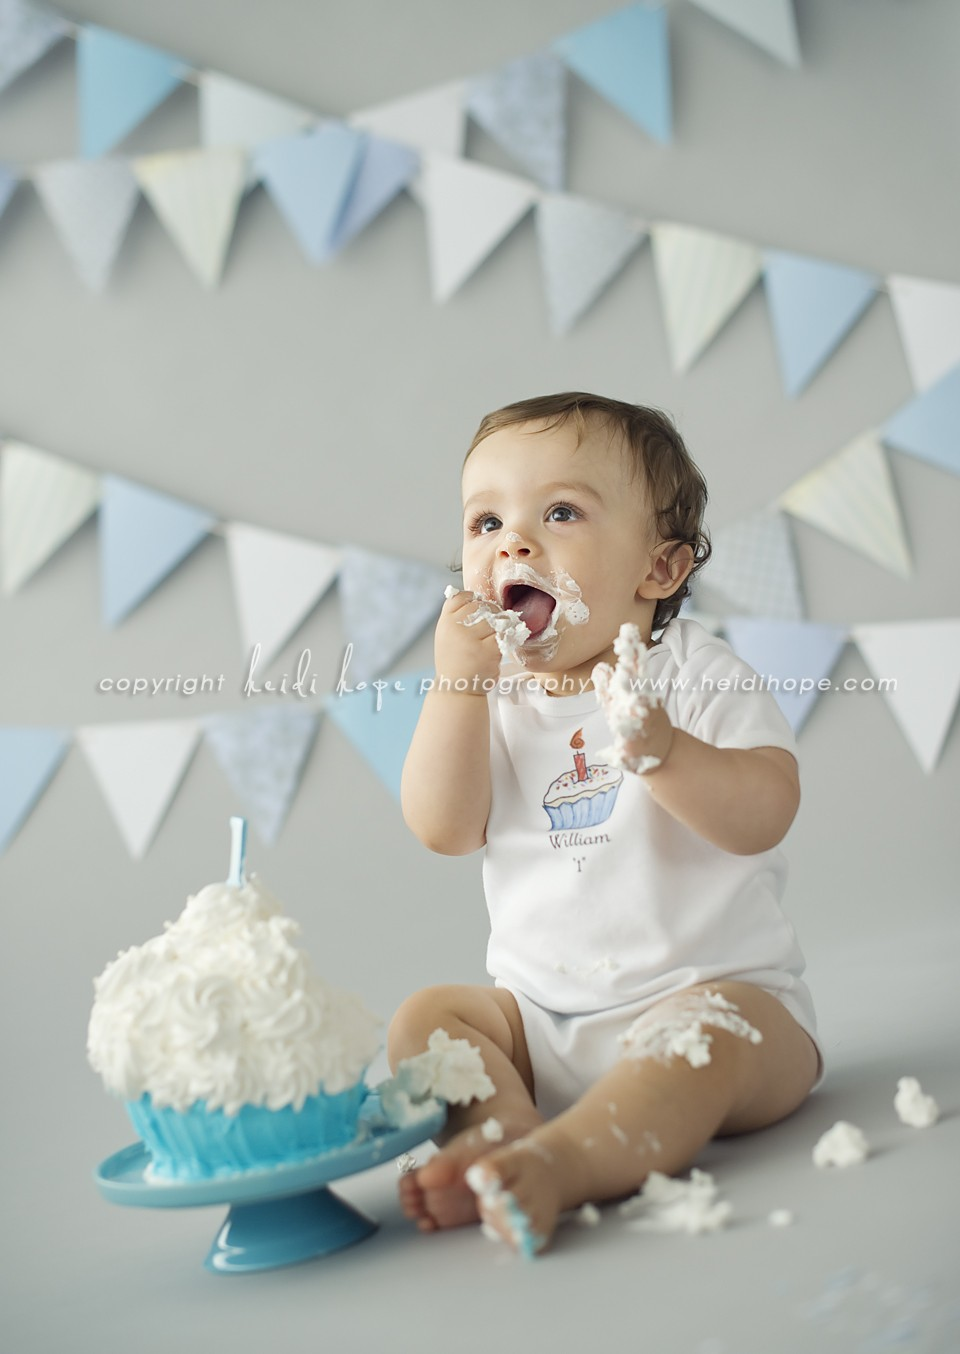 Baby W Turns One Year Old Massachusetts First Birthday